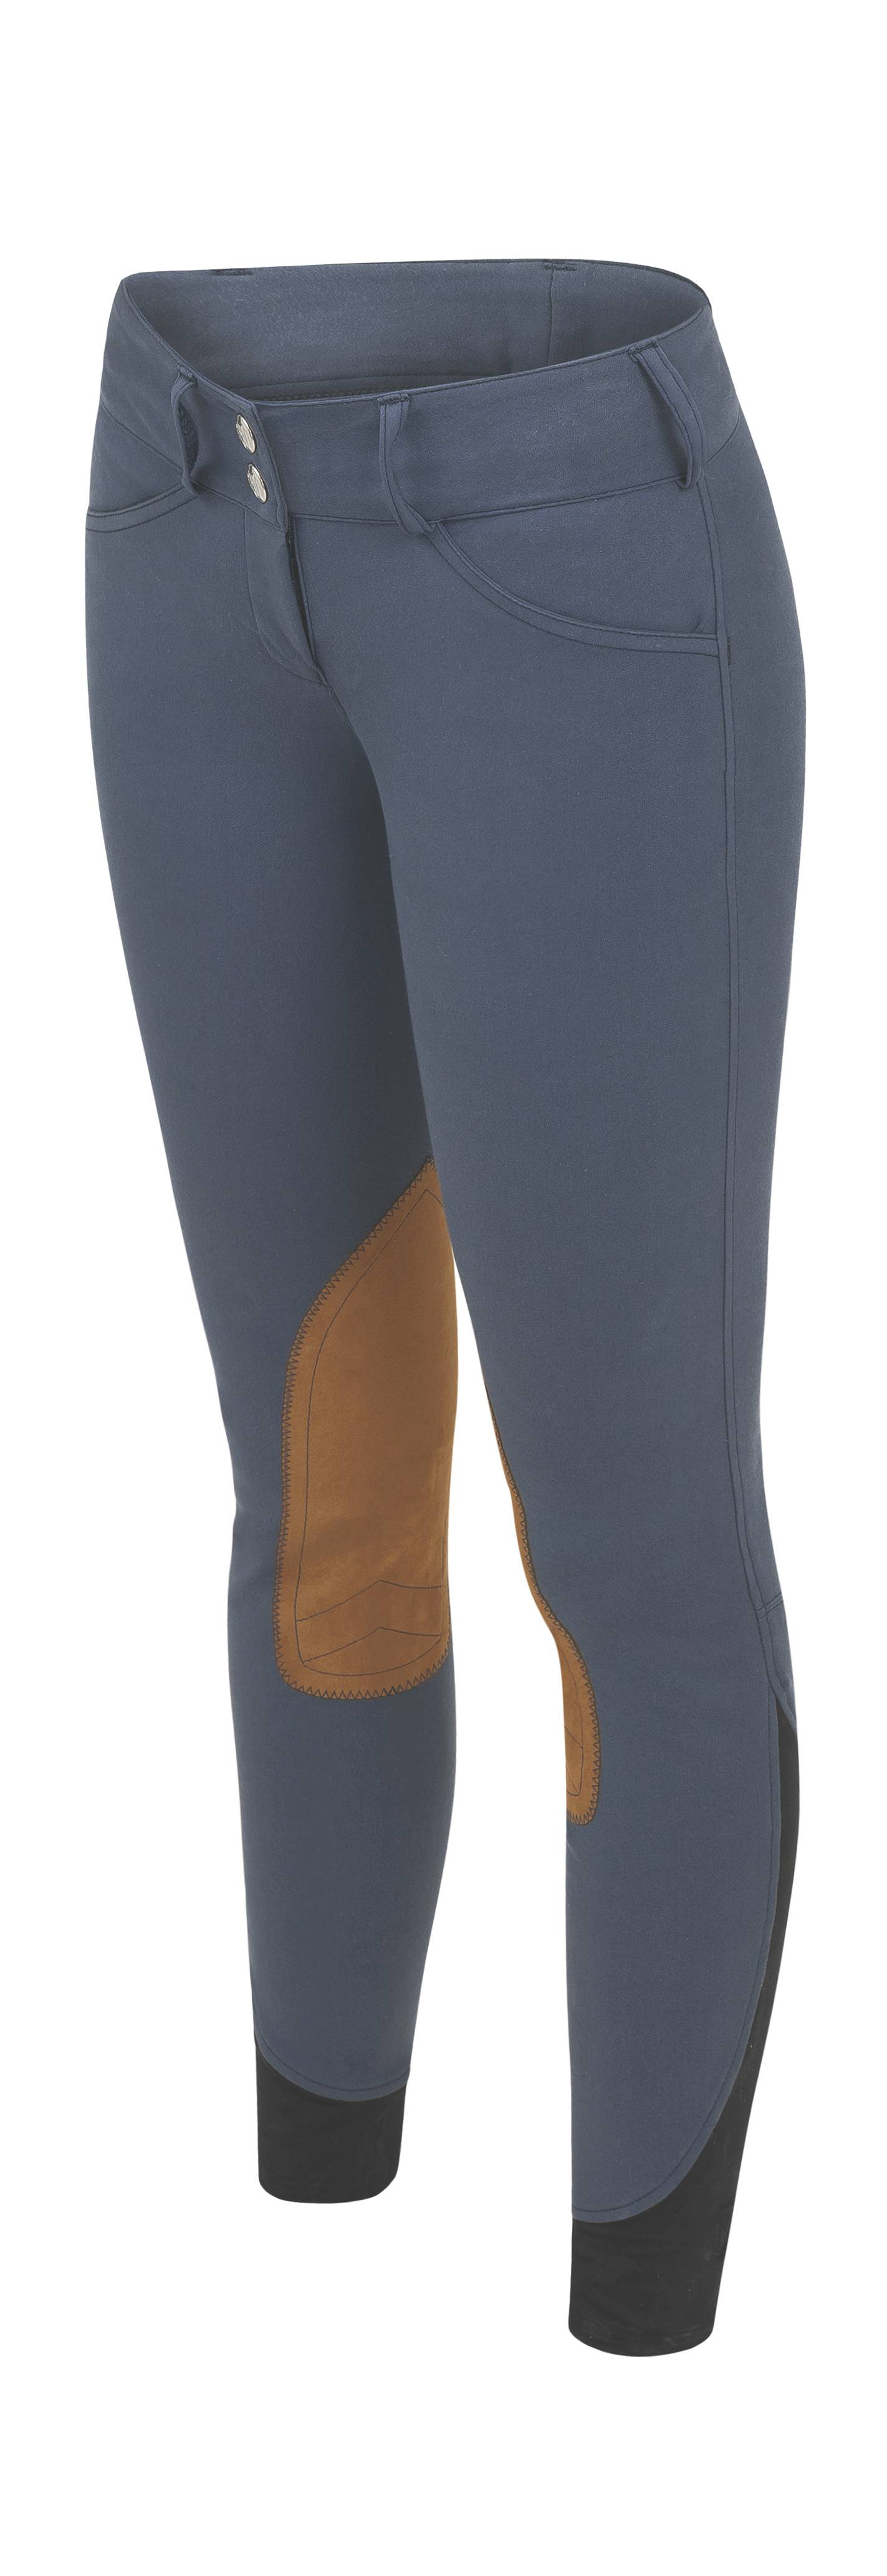 Tredstep Hunter Classic Knee Patch Breech- Ladies